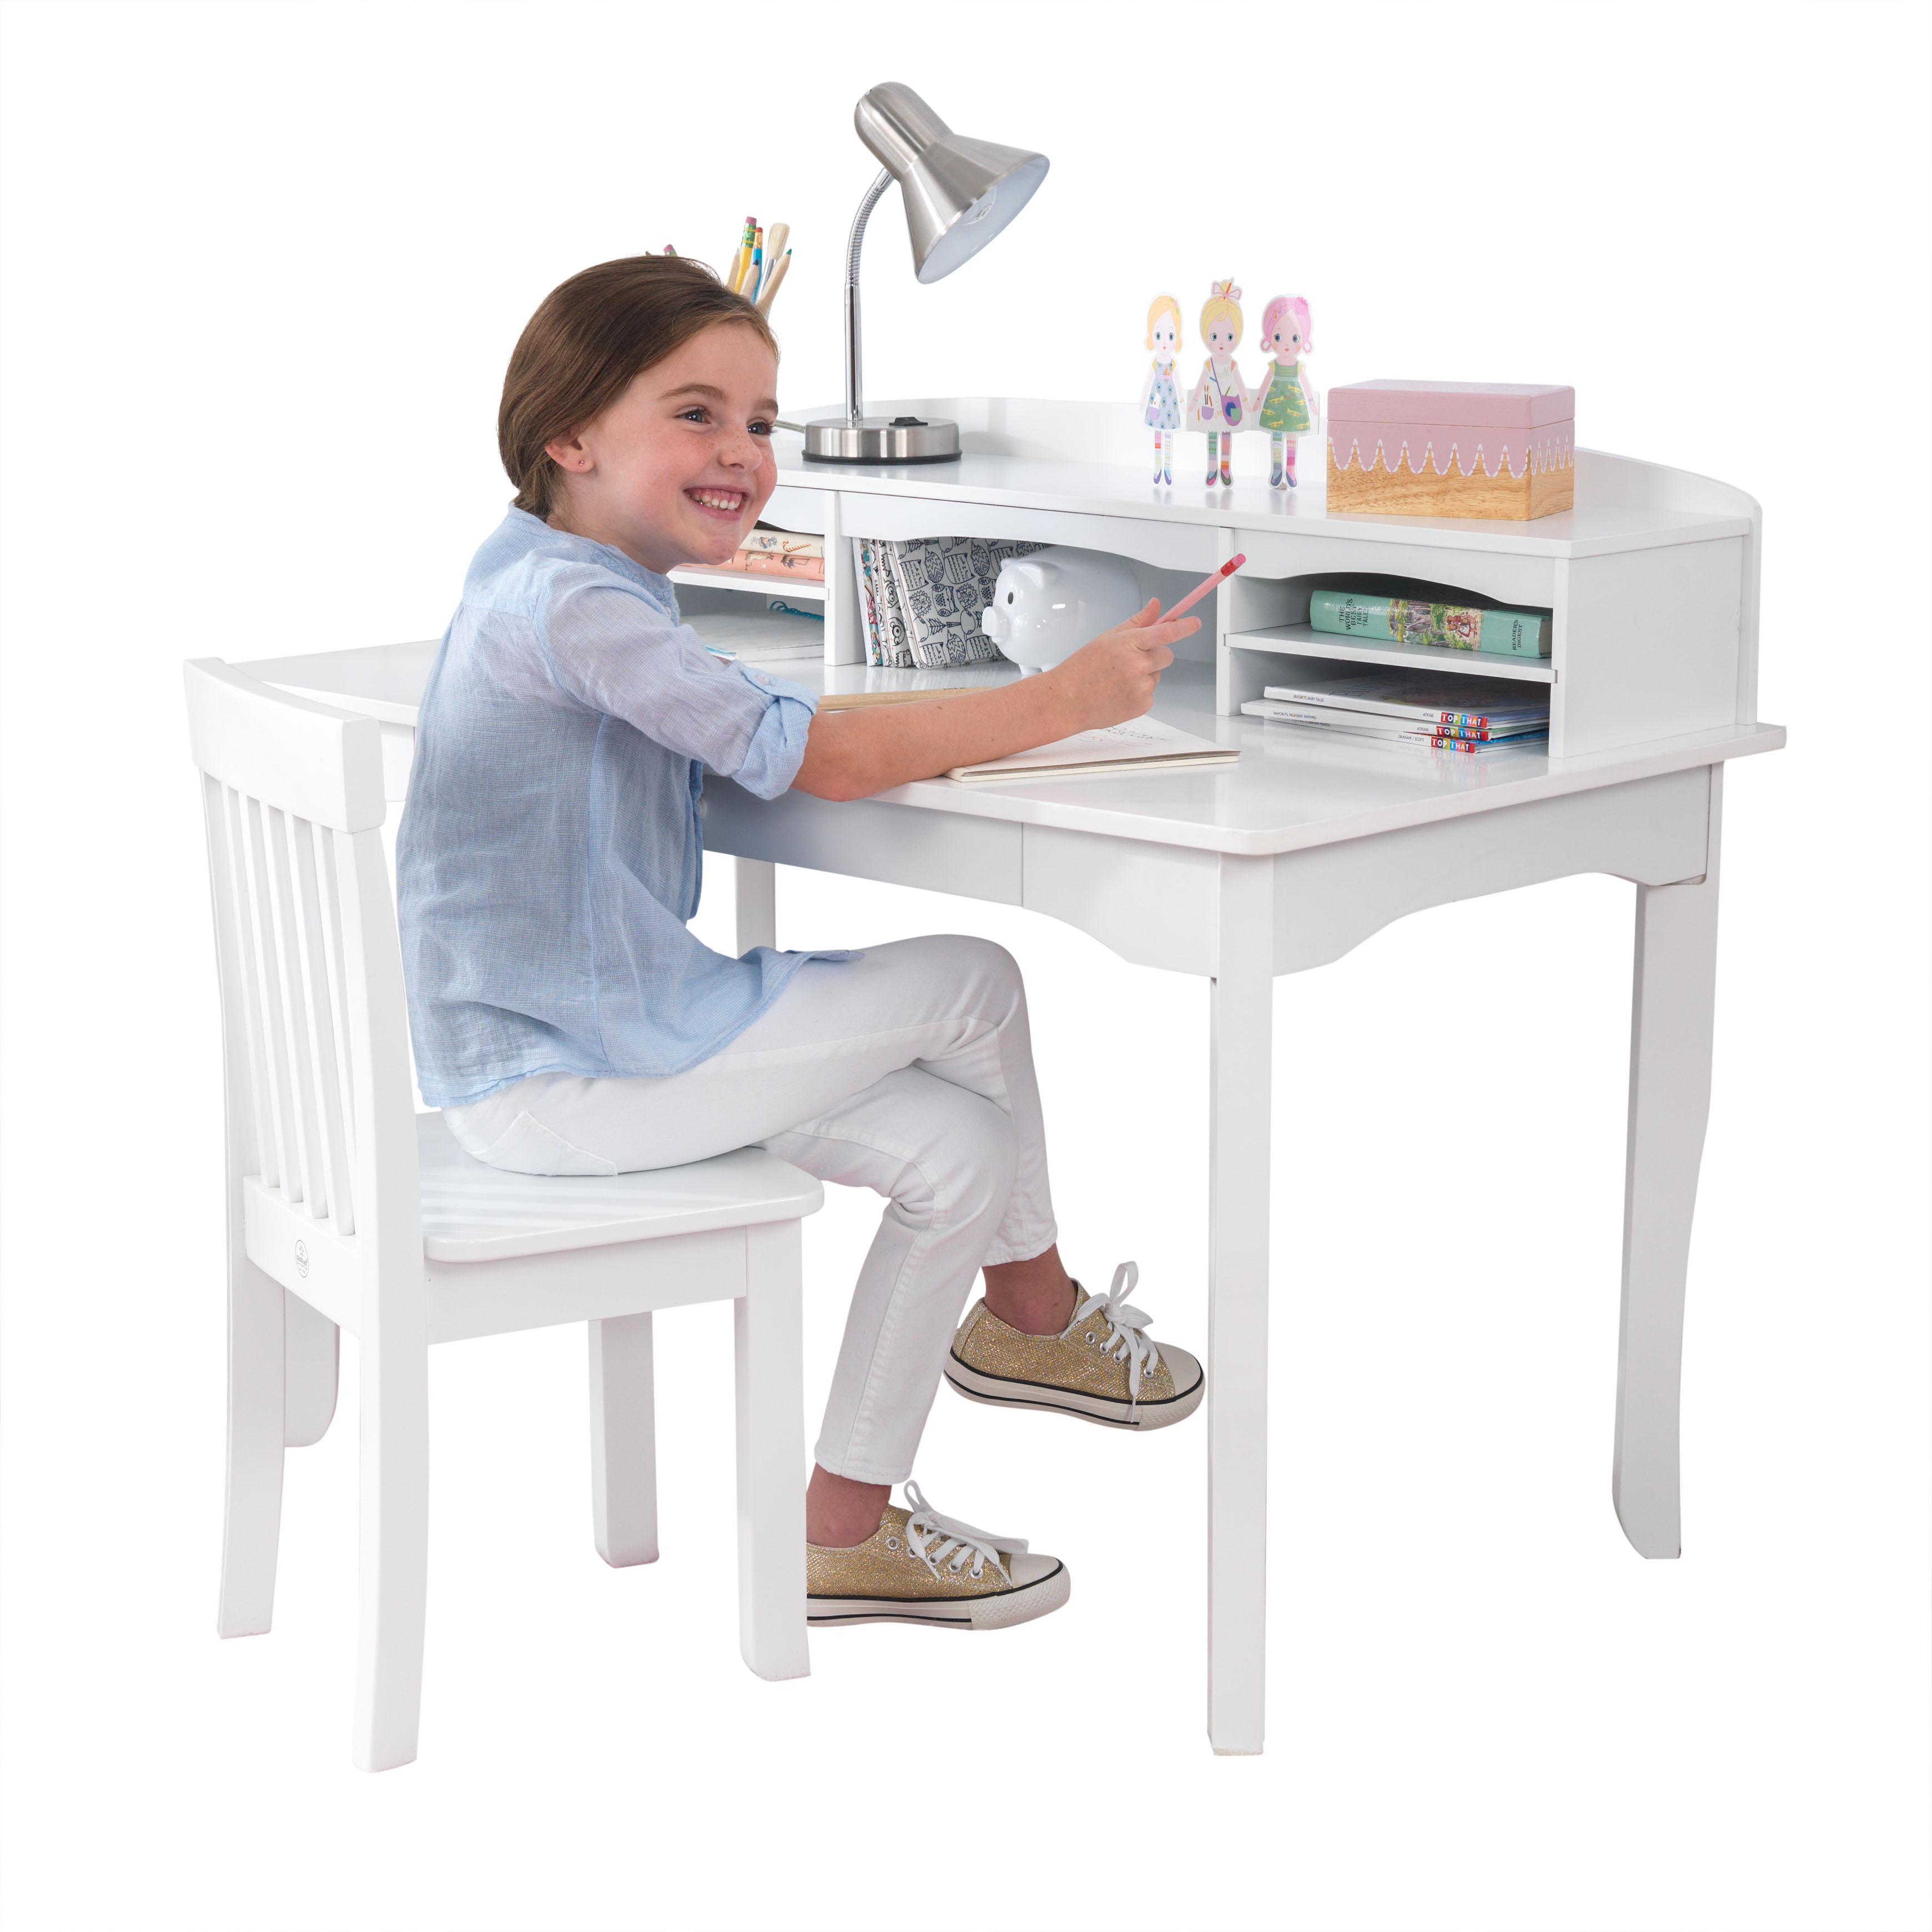 15 Low-Cost Desks to Create a Study Space for Children - Articles about Apartments 15 by  image